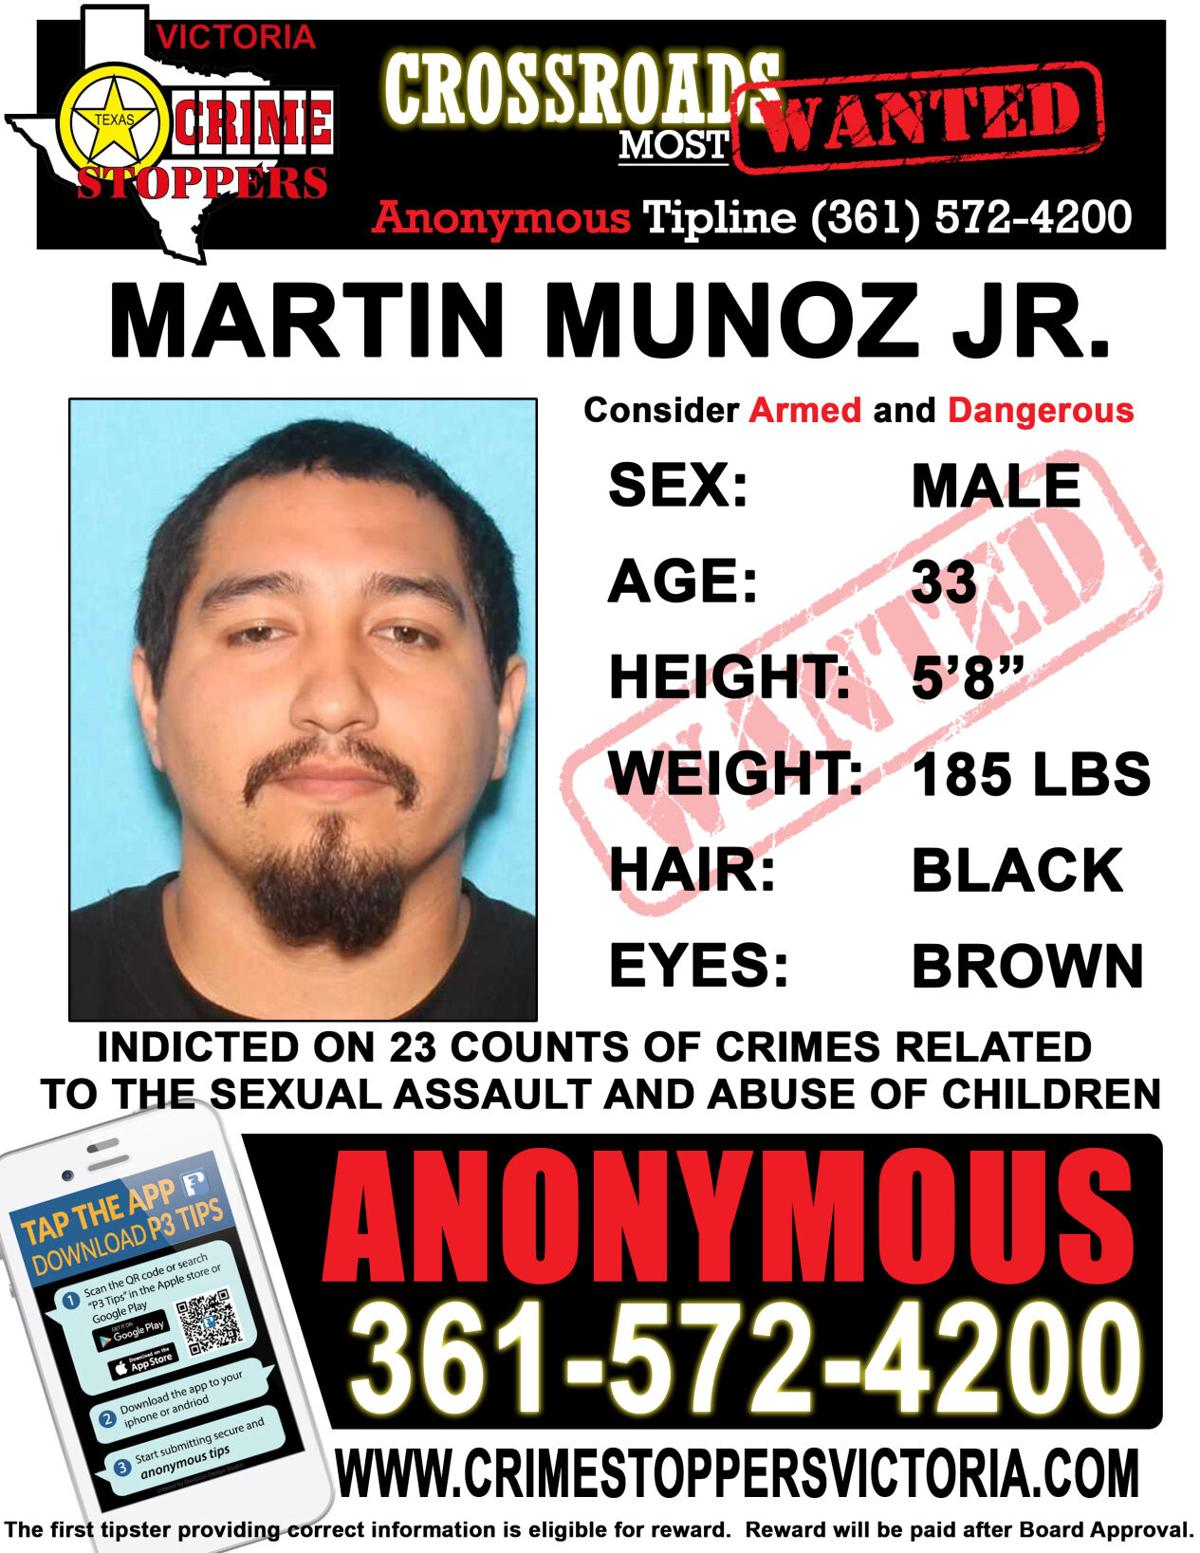 Victoria Crime Stoppers is seeking information regarding the location of Martin Munoz, Jr.